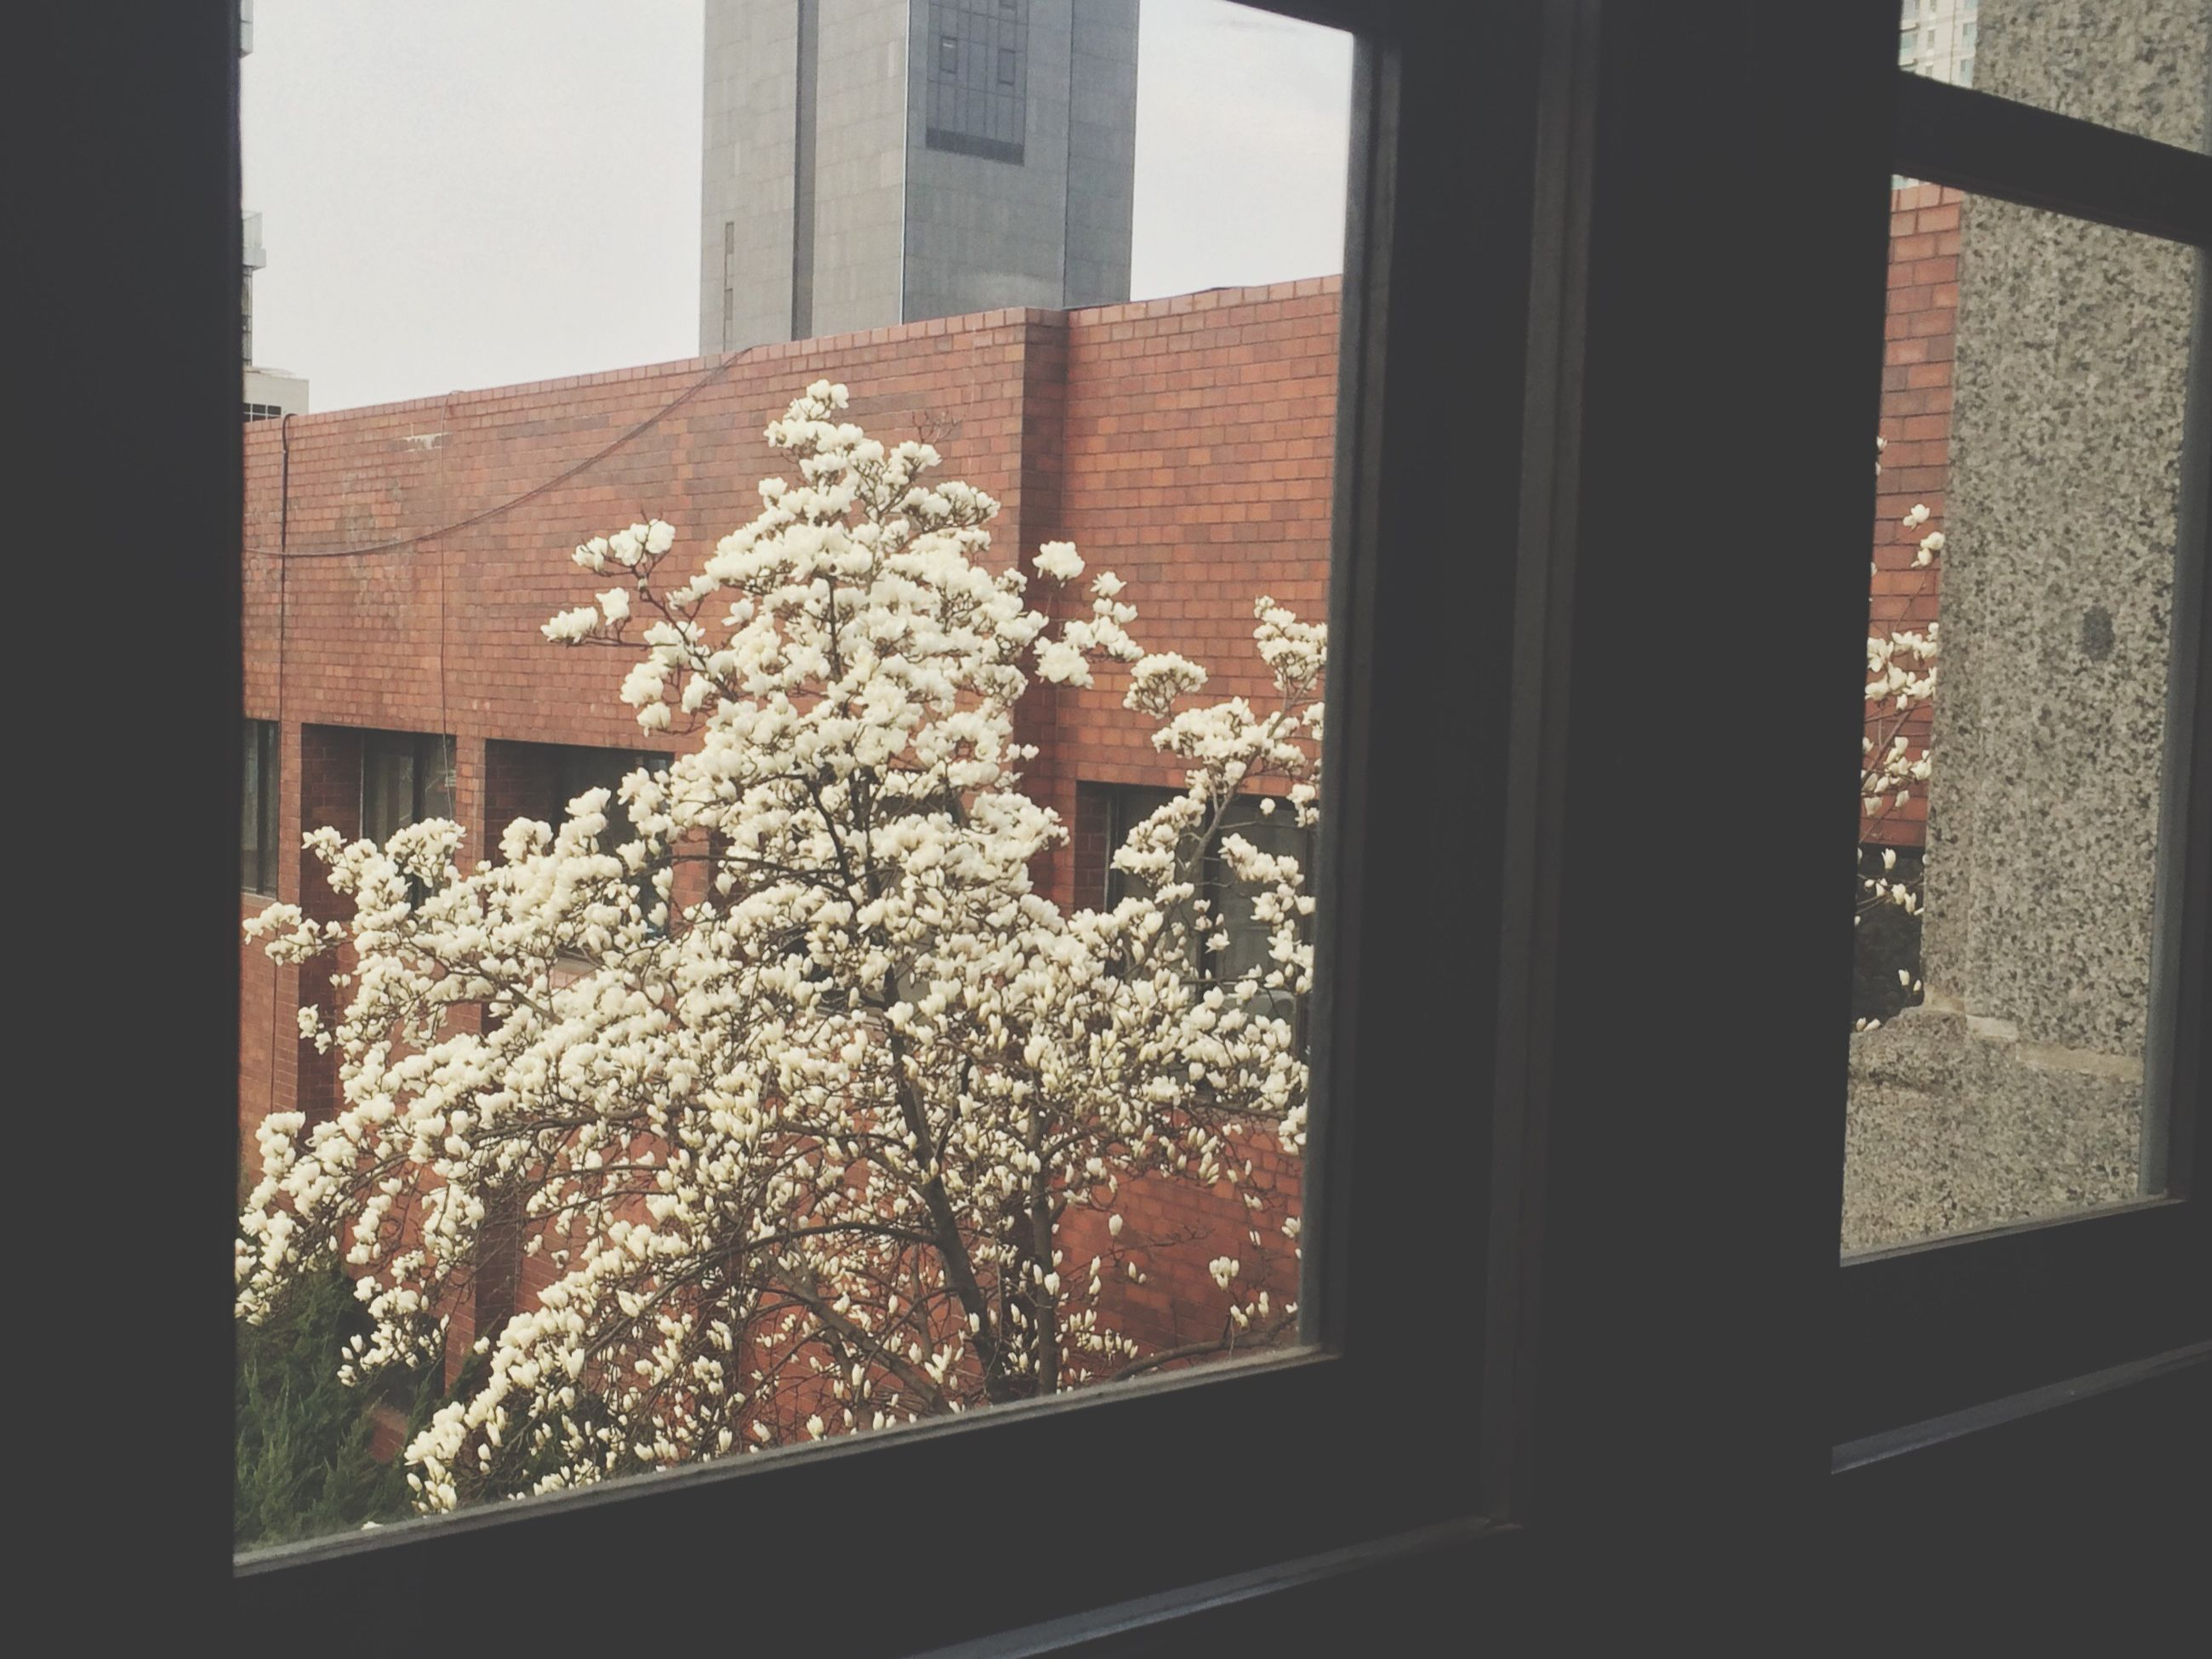 window, indoors, glass - material, house, architecture, built structure, building exterior, transparent, flower, window sill, home interior, growth, plant, potted plant, day, residential structure, no people, close-up, residential building, nature